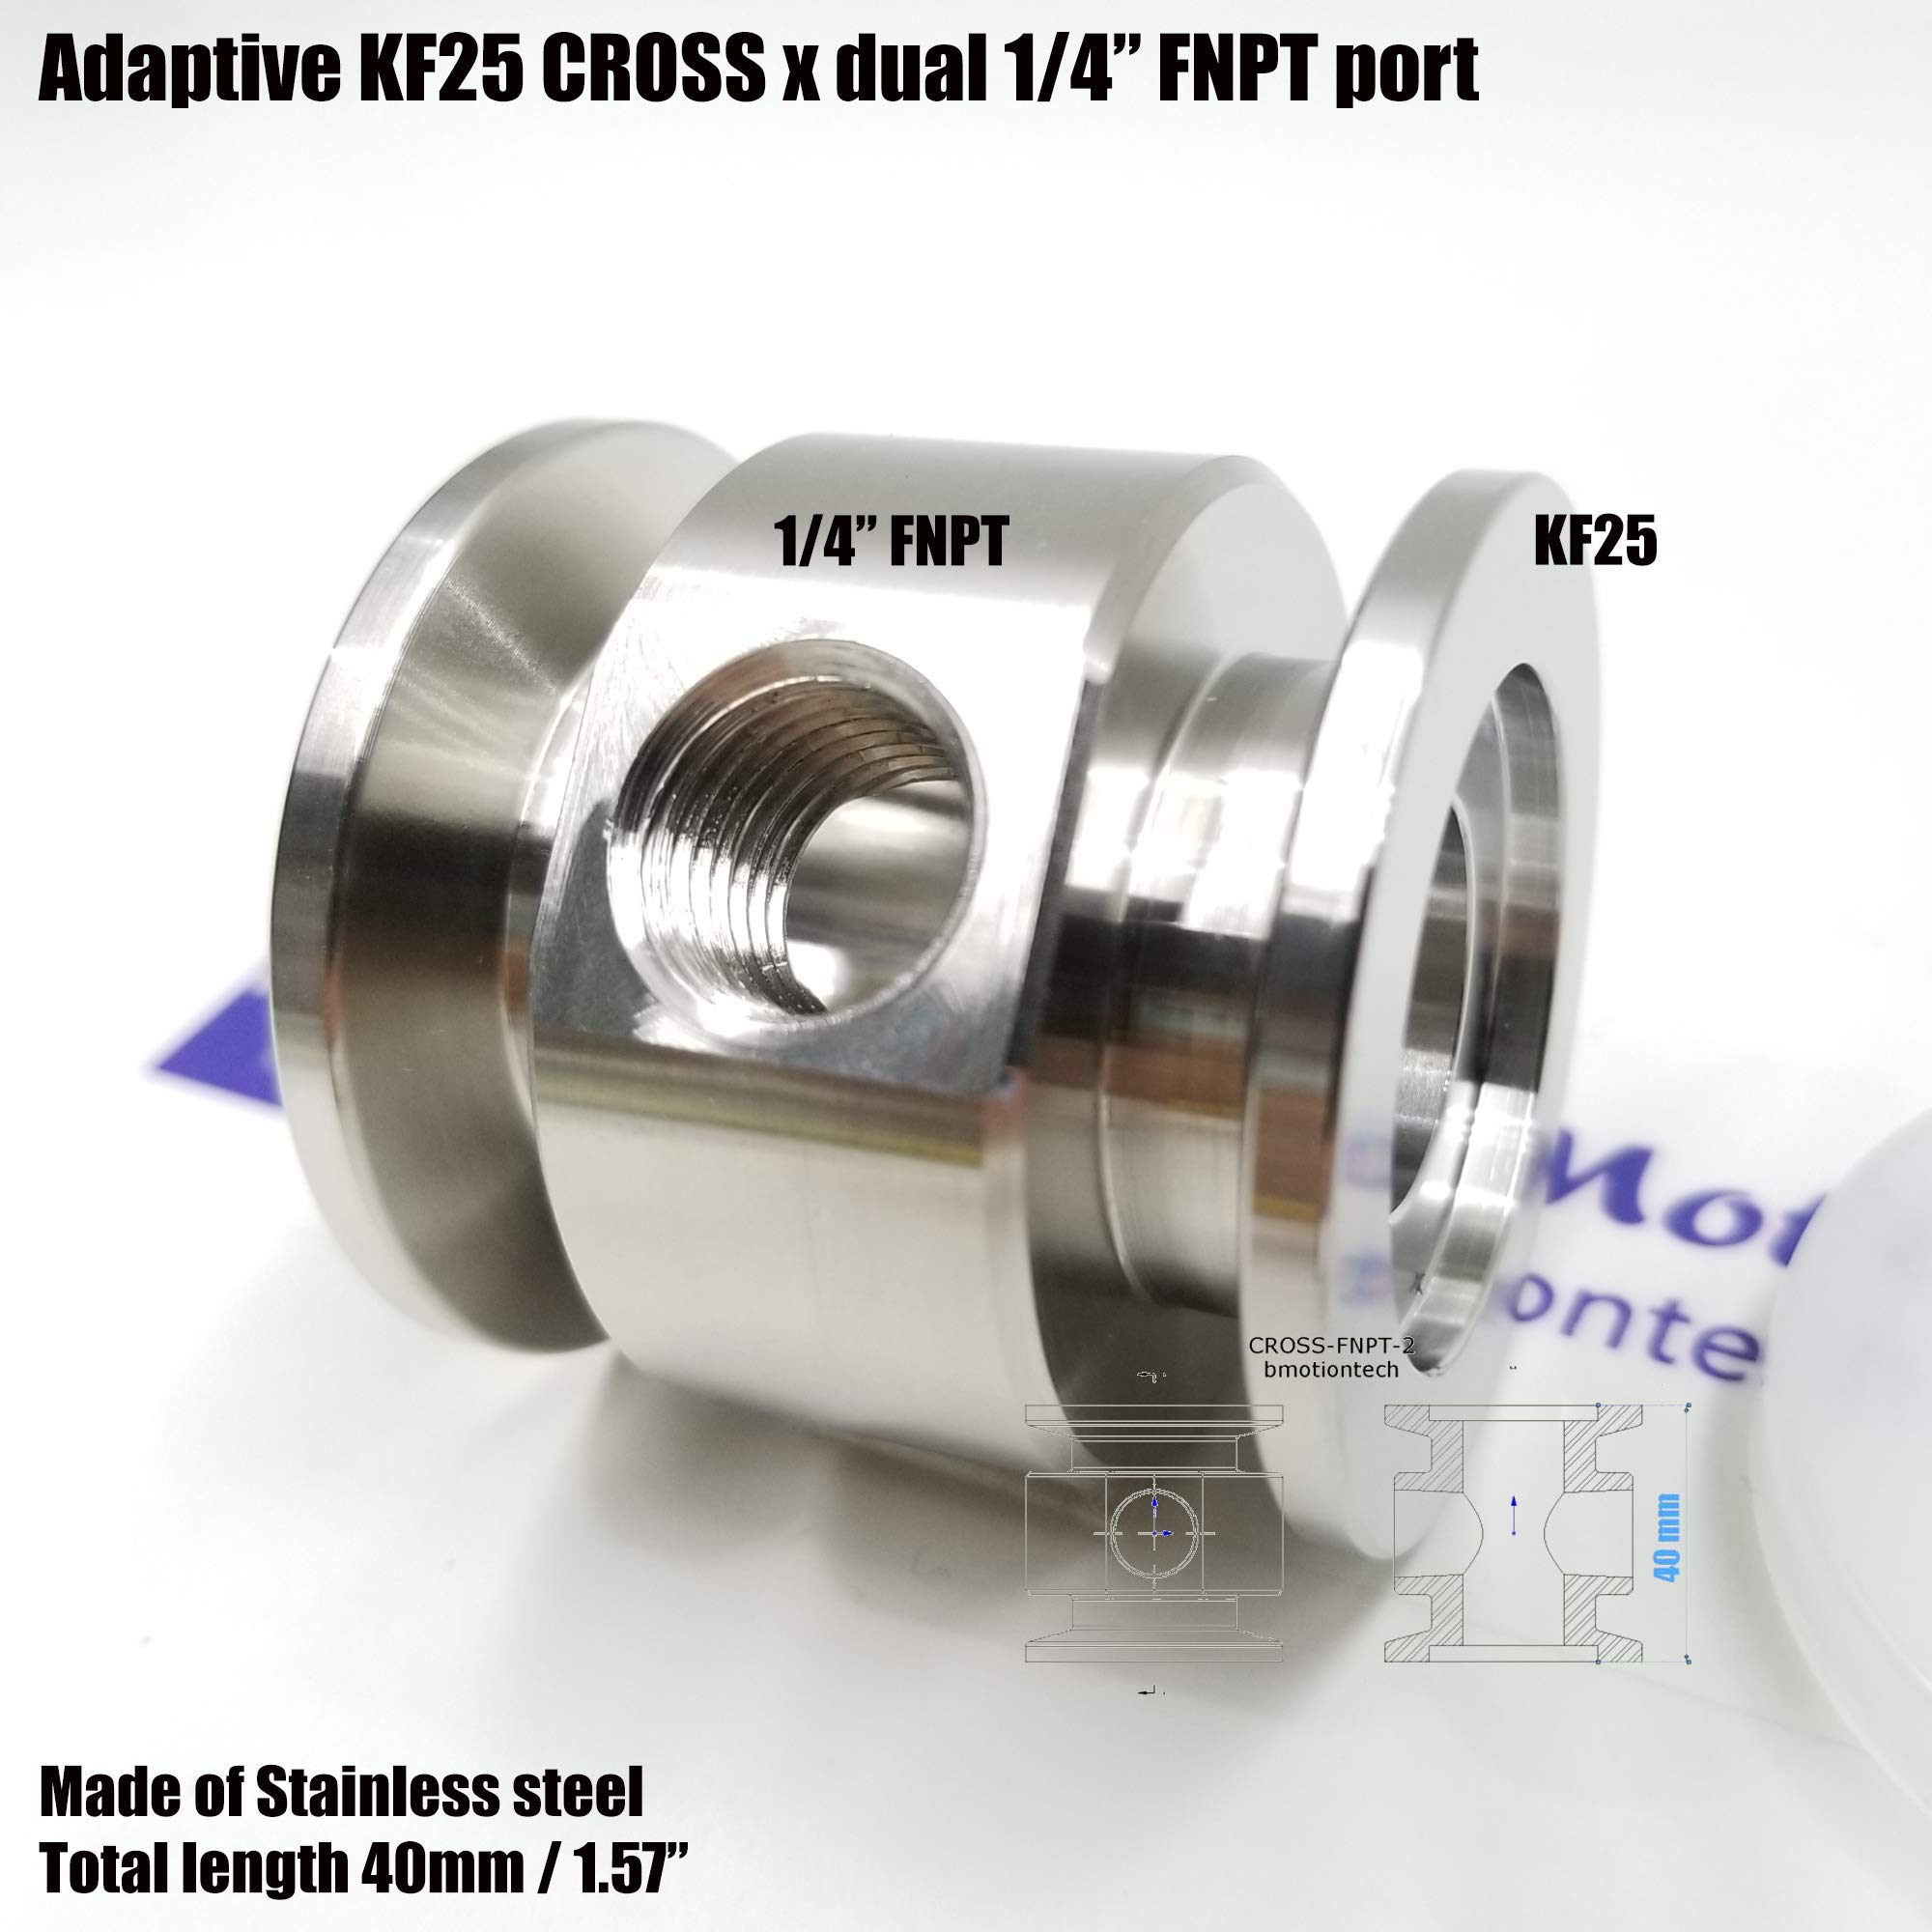 """Vacuum Adaptive Cross Both Ends KF25 Flange and Double Middle 1/4"""" FNPT Port, End to end Length 40 mm by Bmotiontech (Image #2)"""